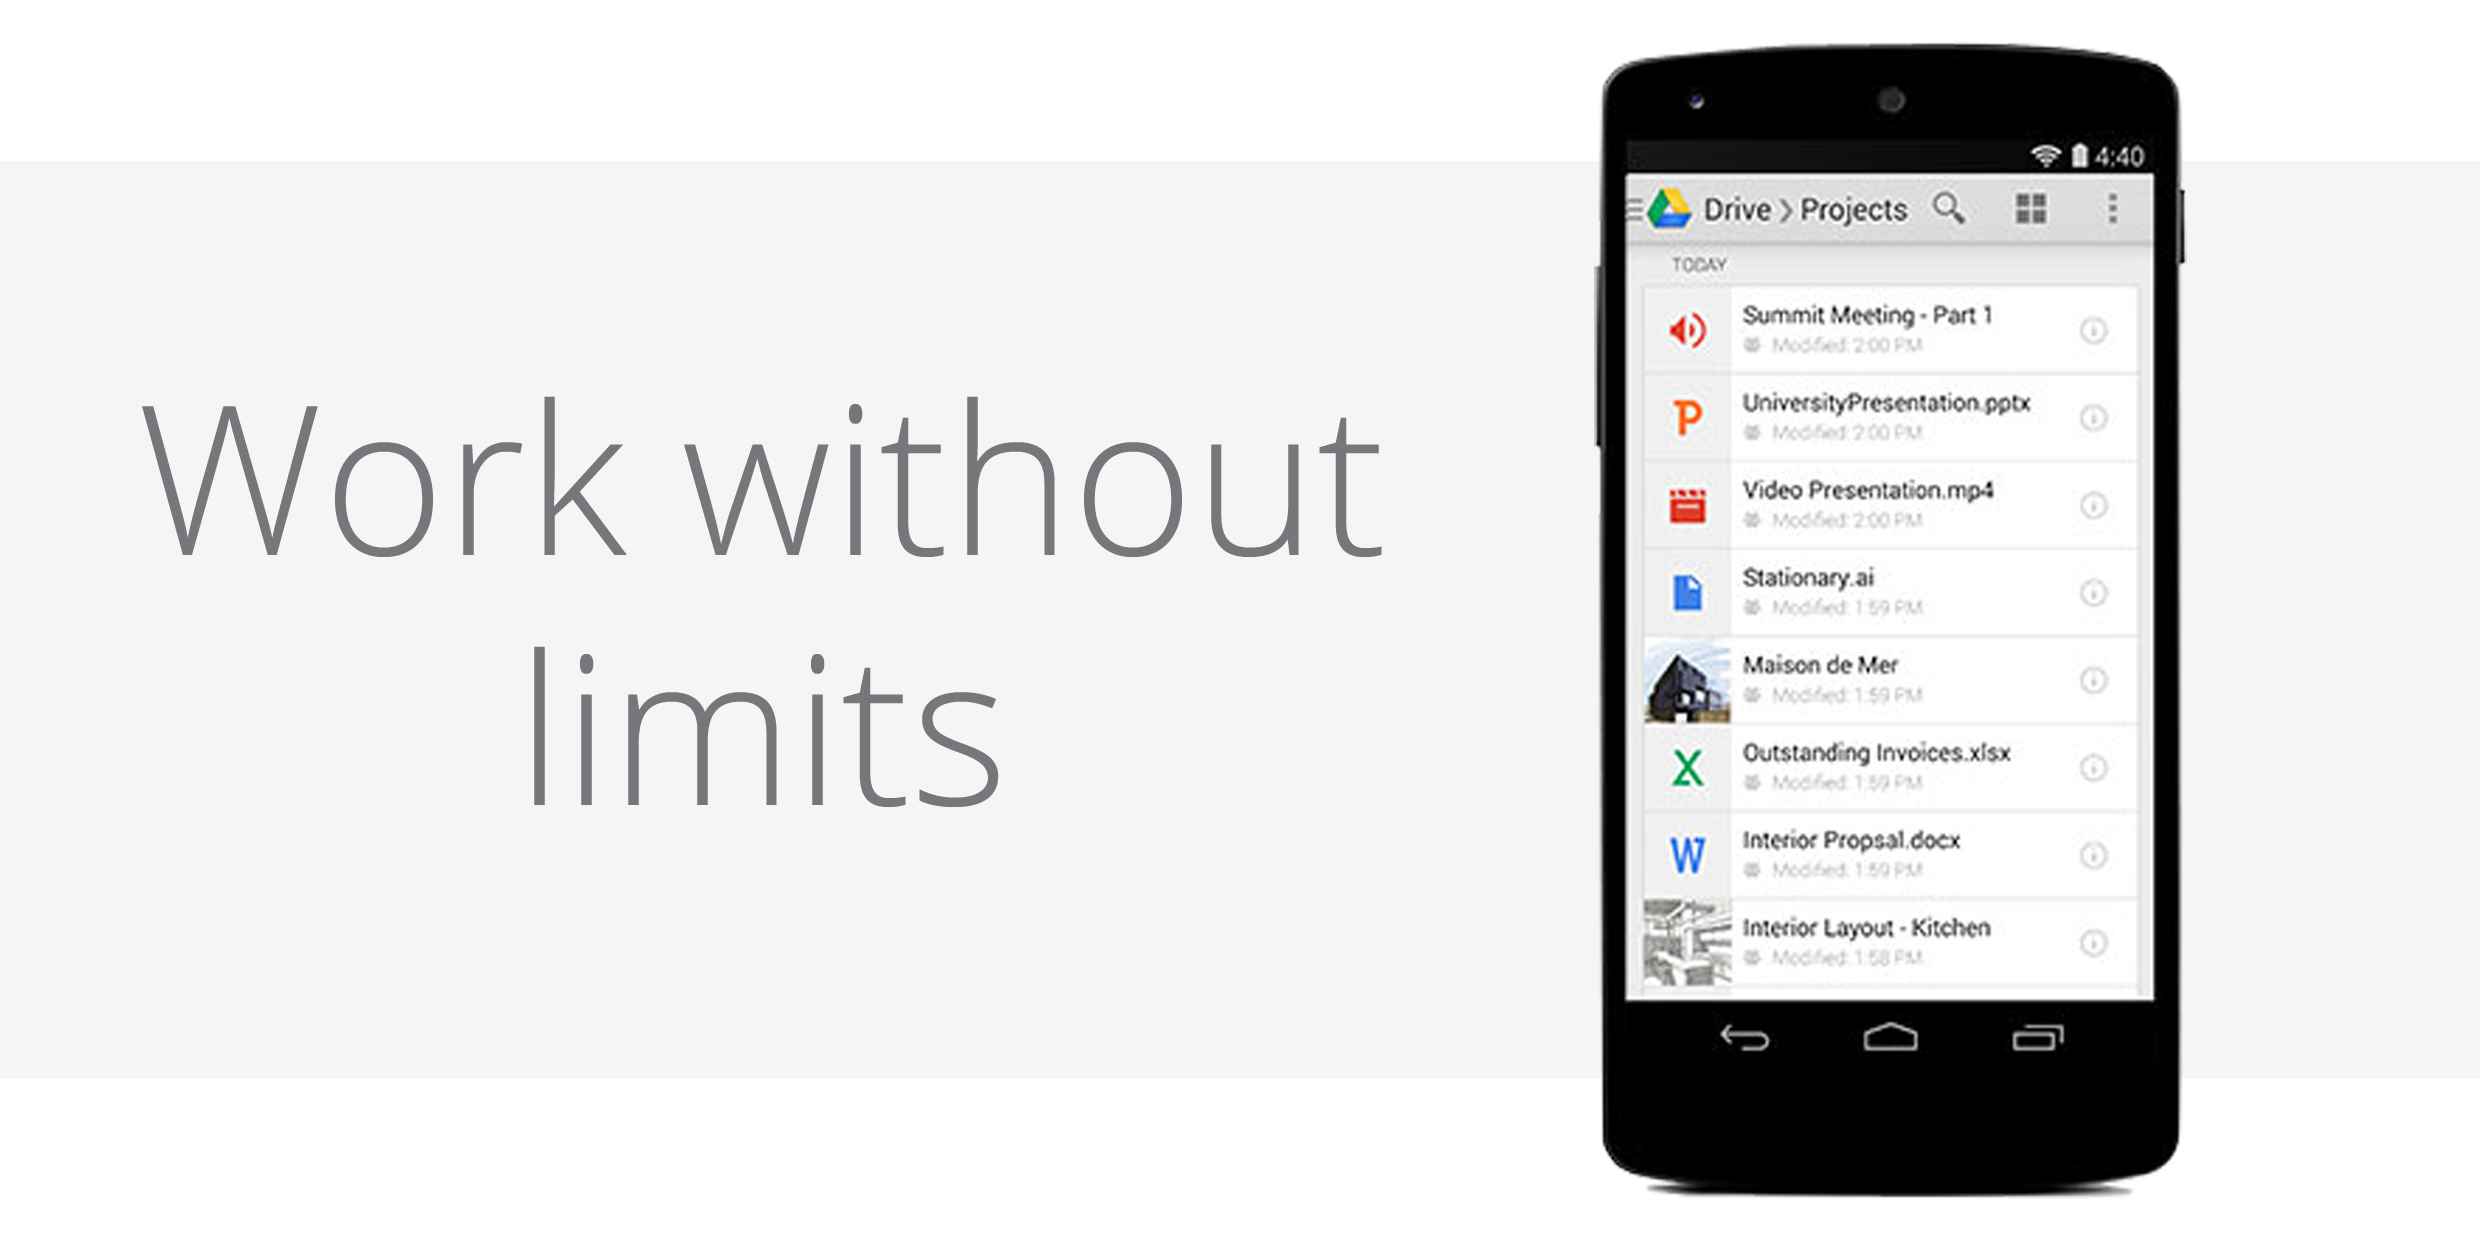 Google Drive for Work: Work without limits